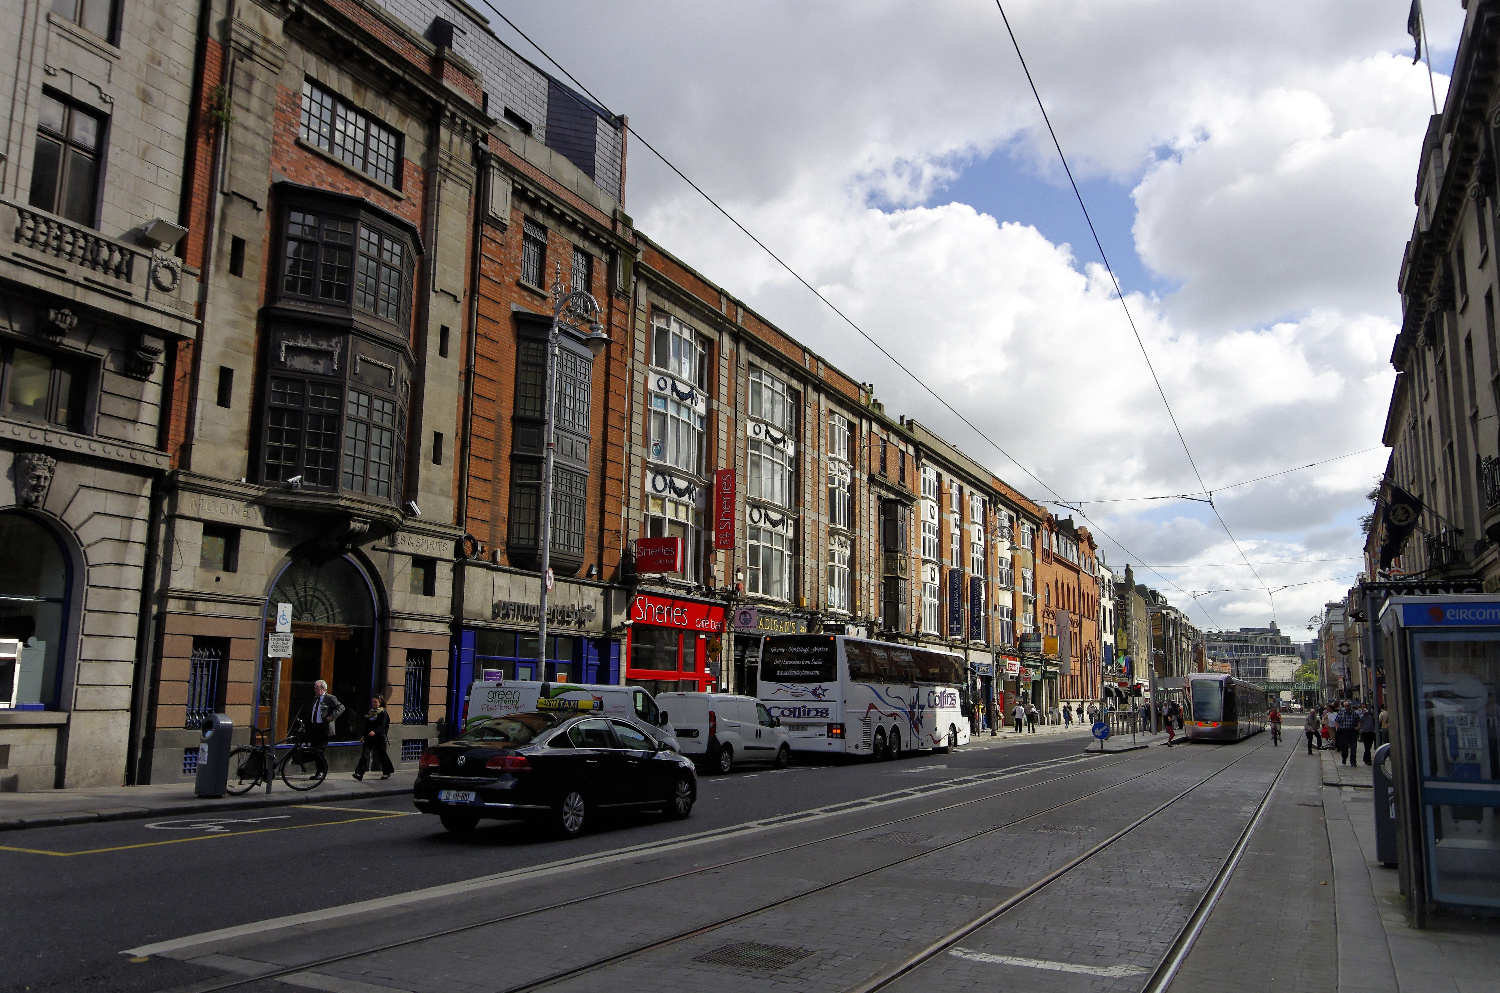 The Old Streets of Dublin